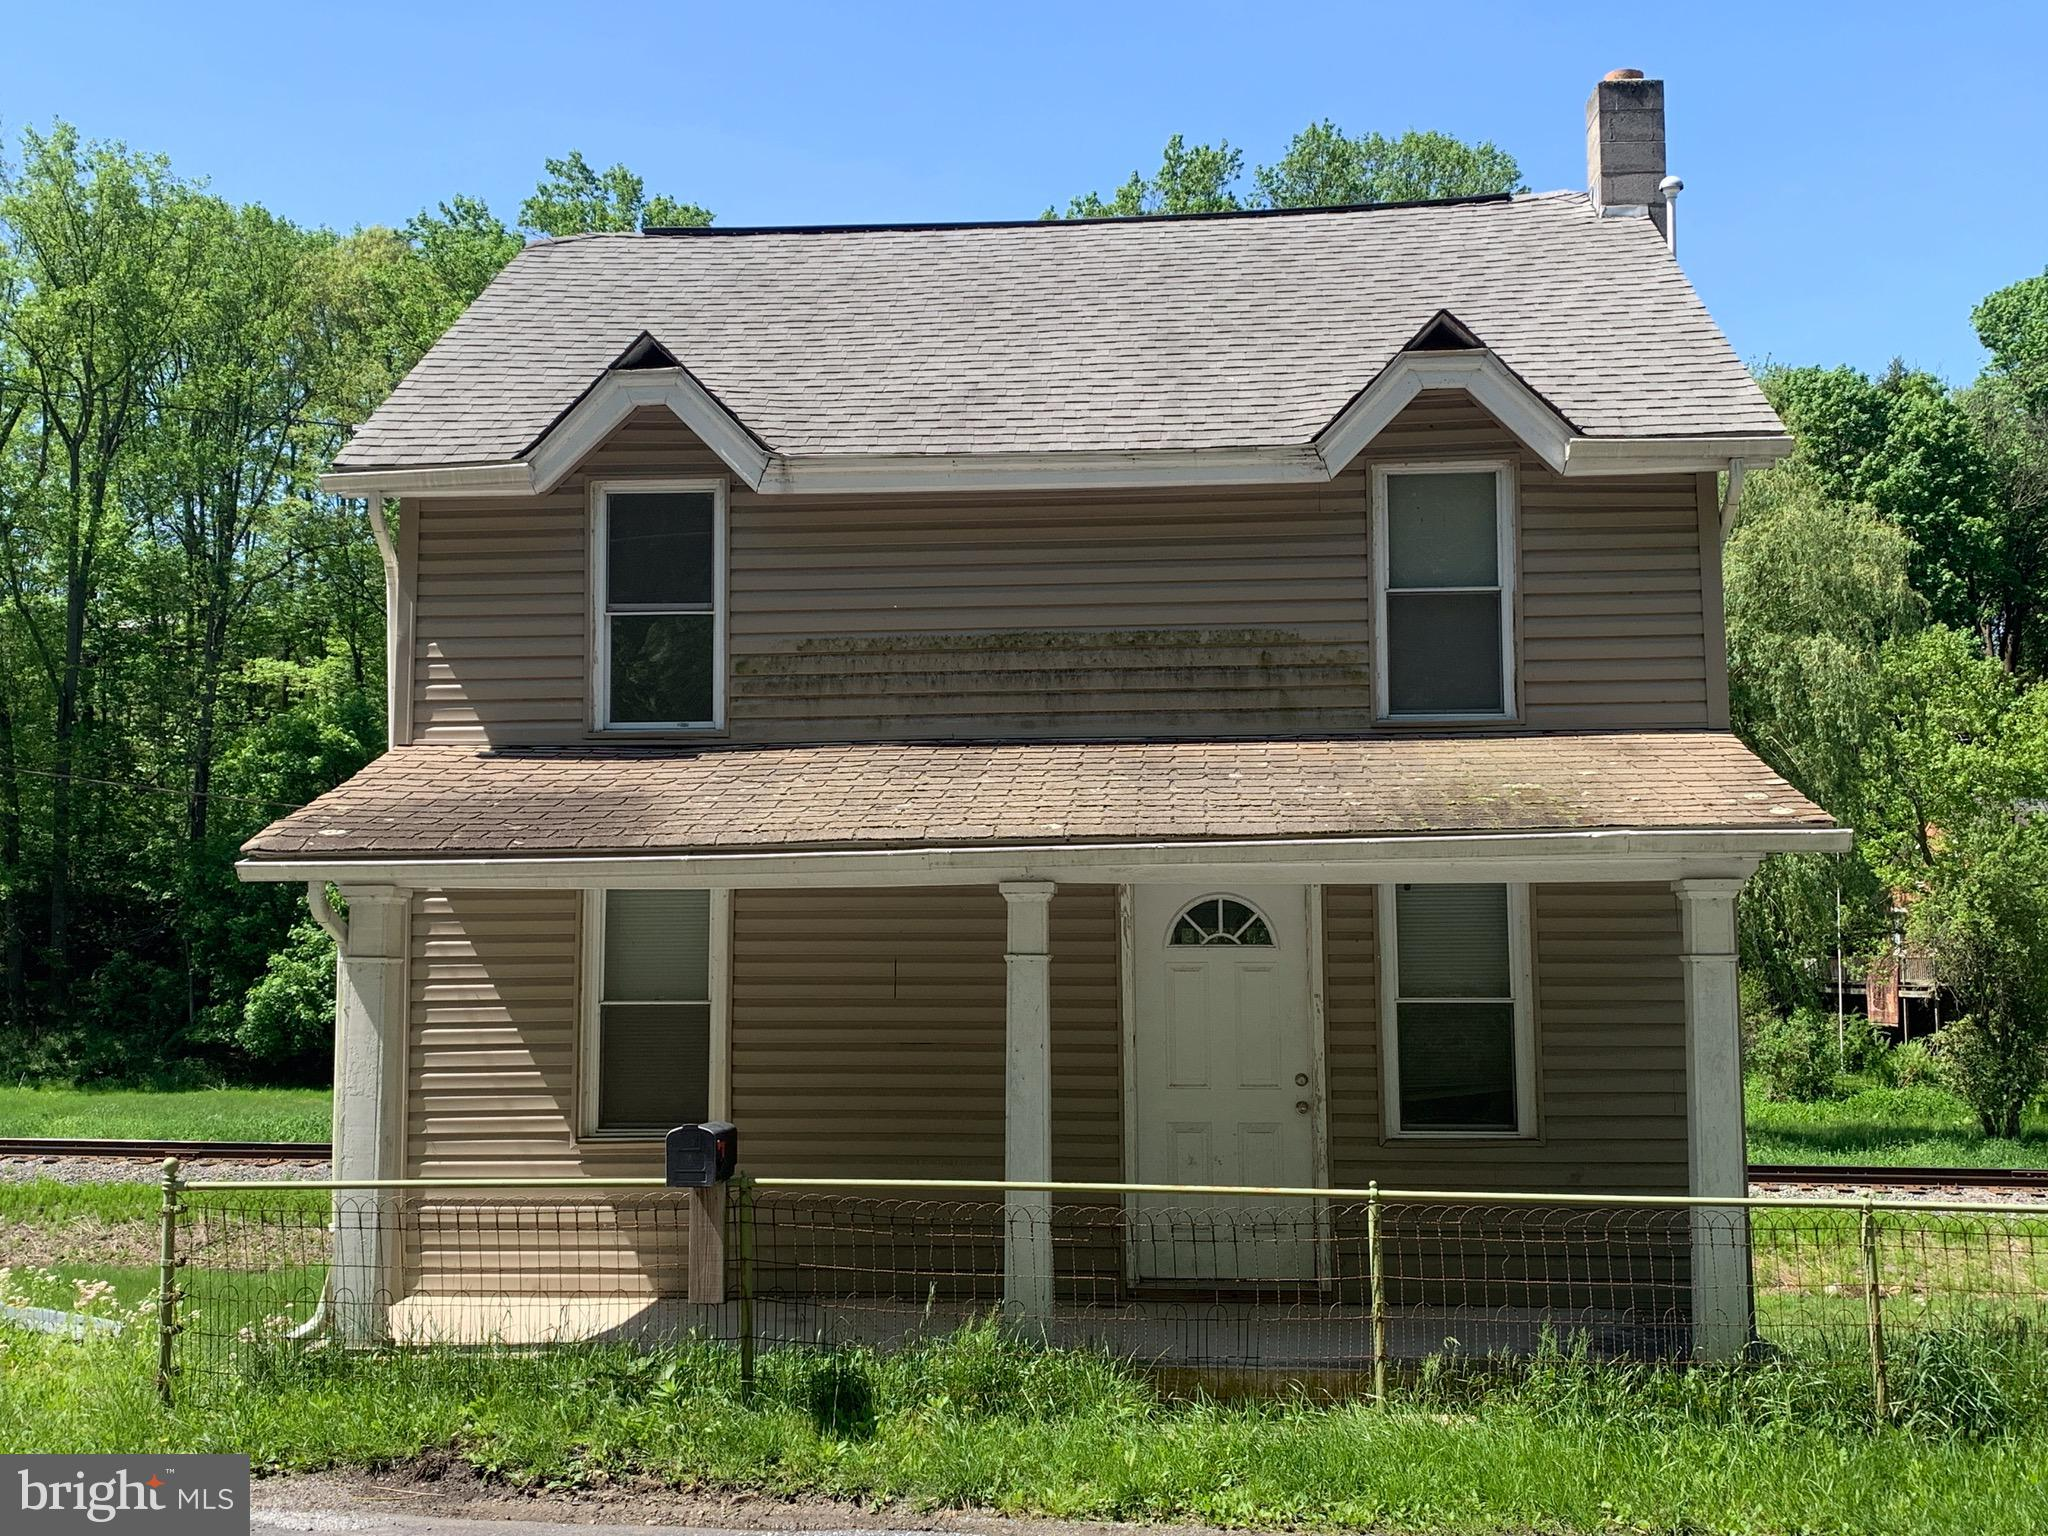 8002 BLOOMING GROVE ROAD, GLENVILLE, PA 17329